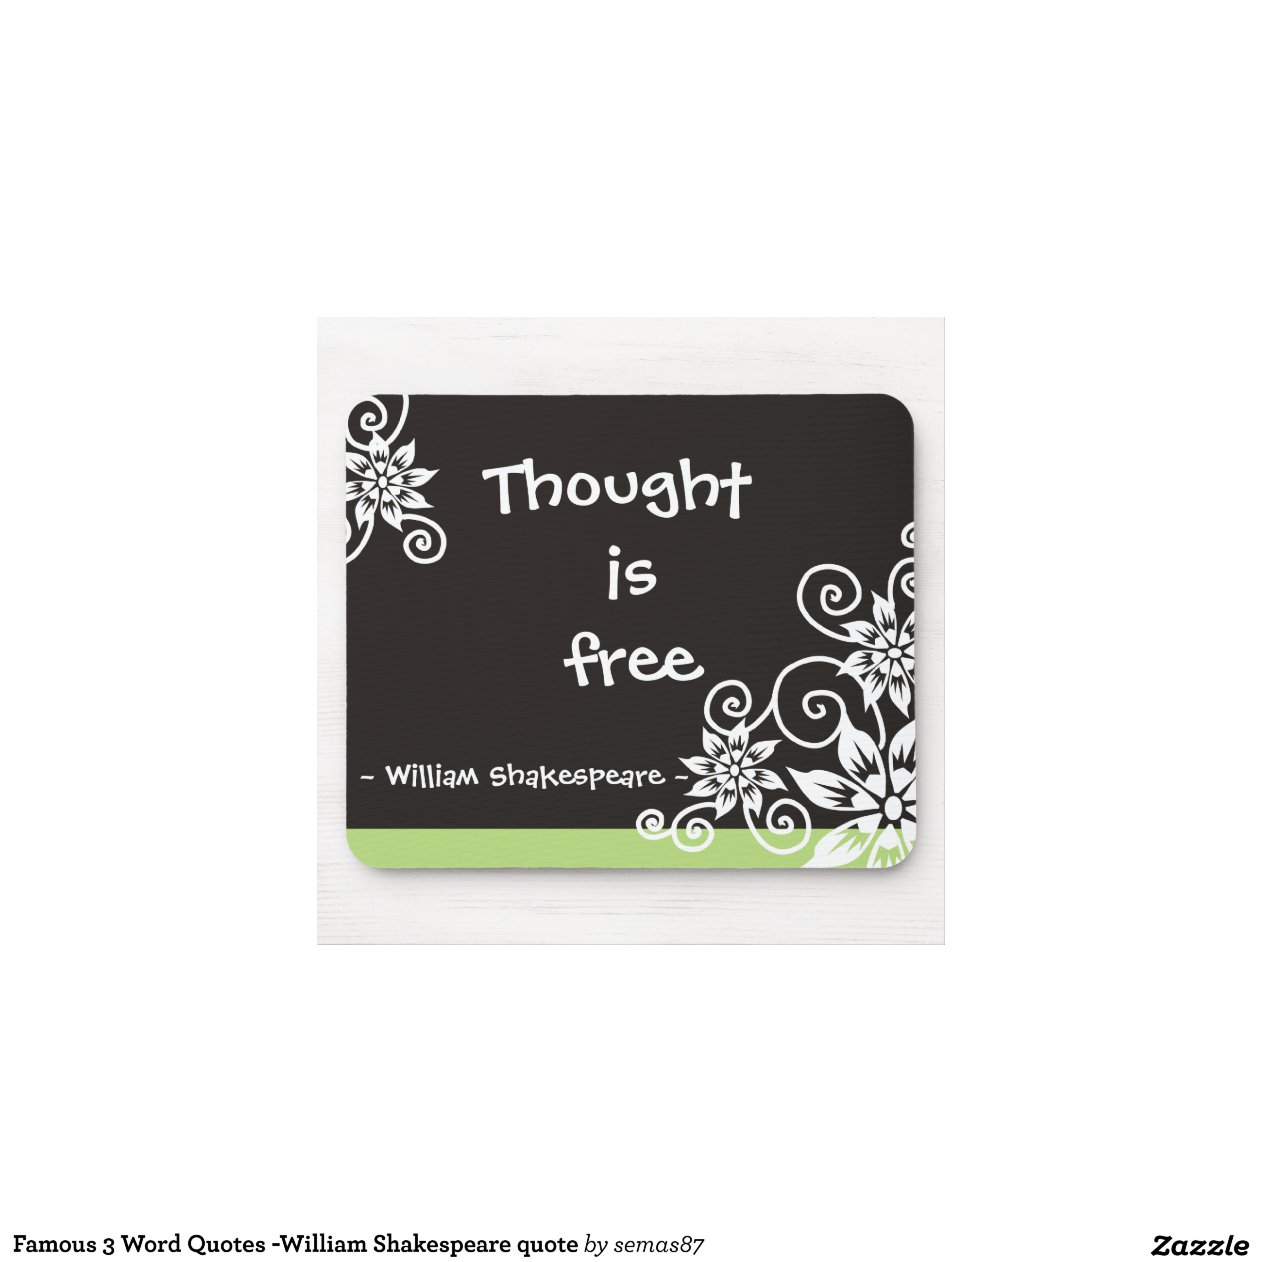 Famous 3 Word Quotes -William Shakespeare Quote Mouse Pad